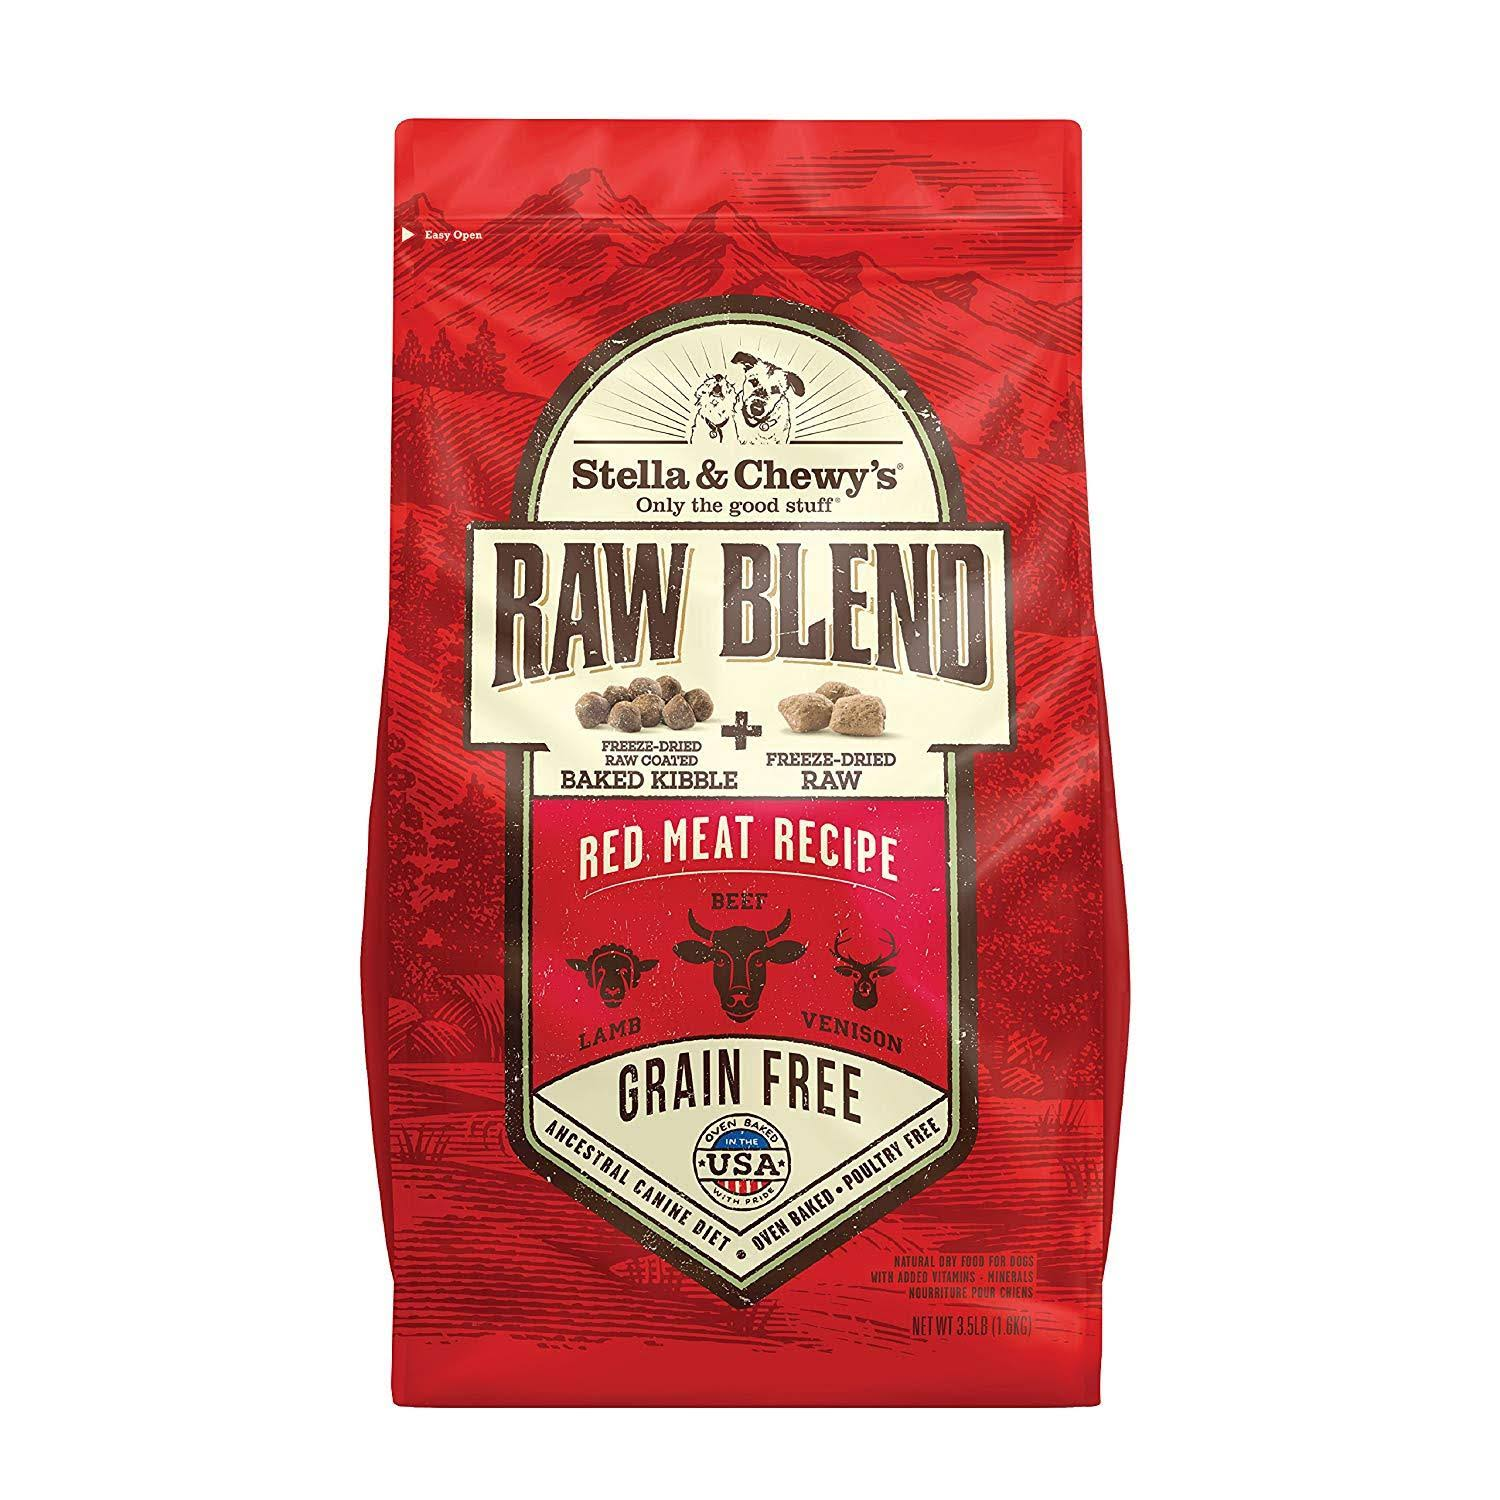 Stella & Chewy's Raw Blend Dog Food - Red Meat Recipe